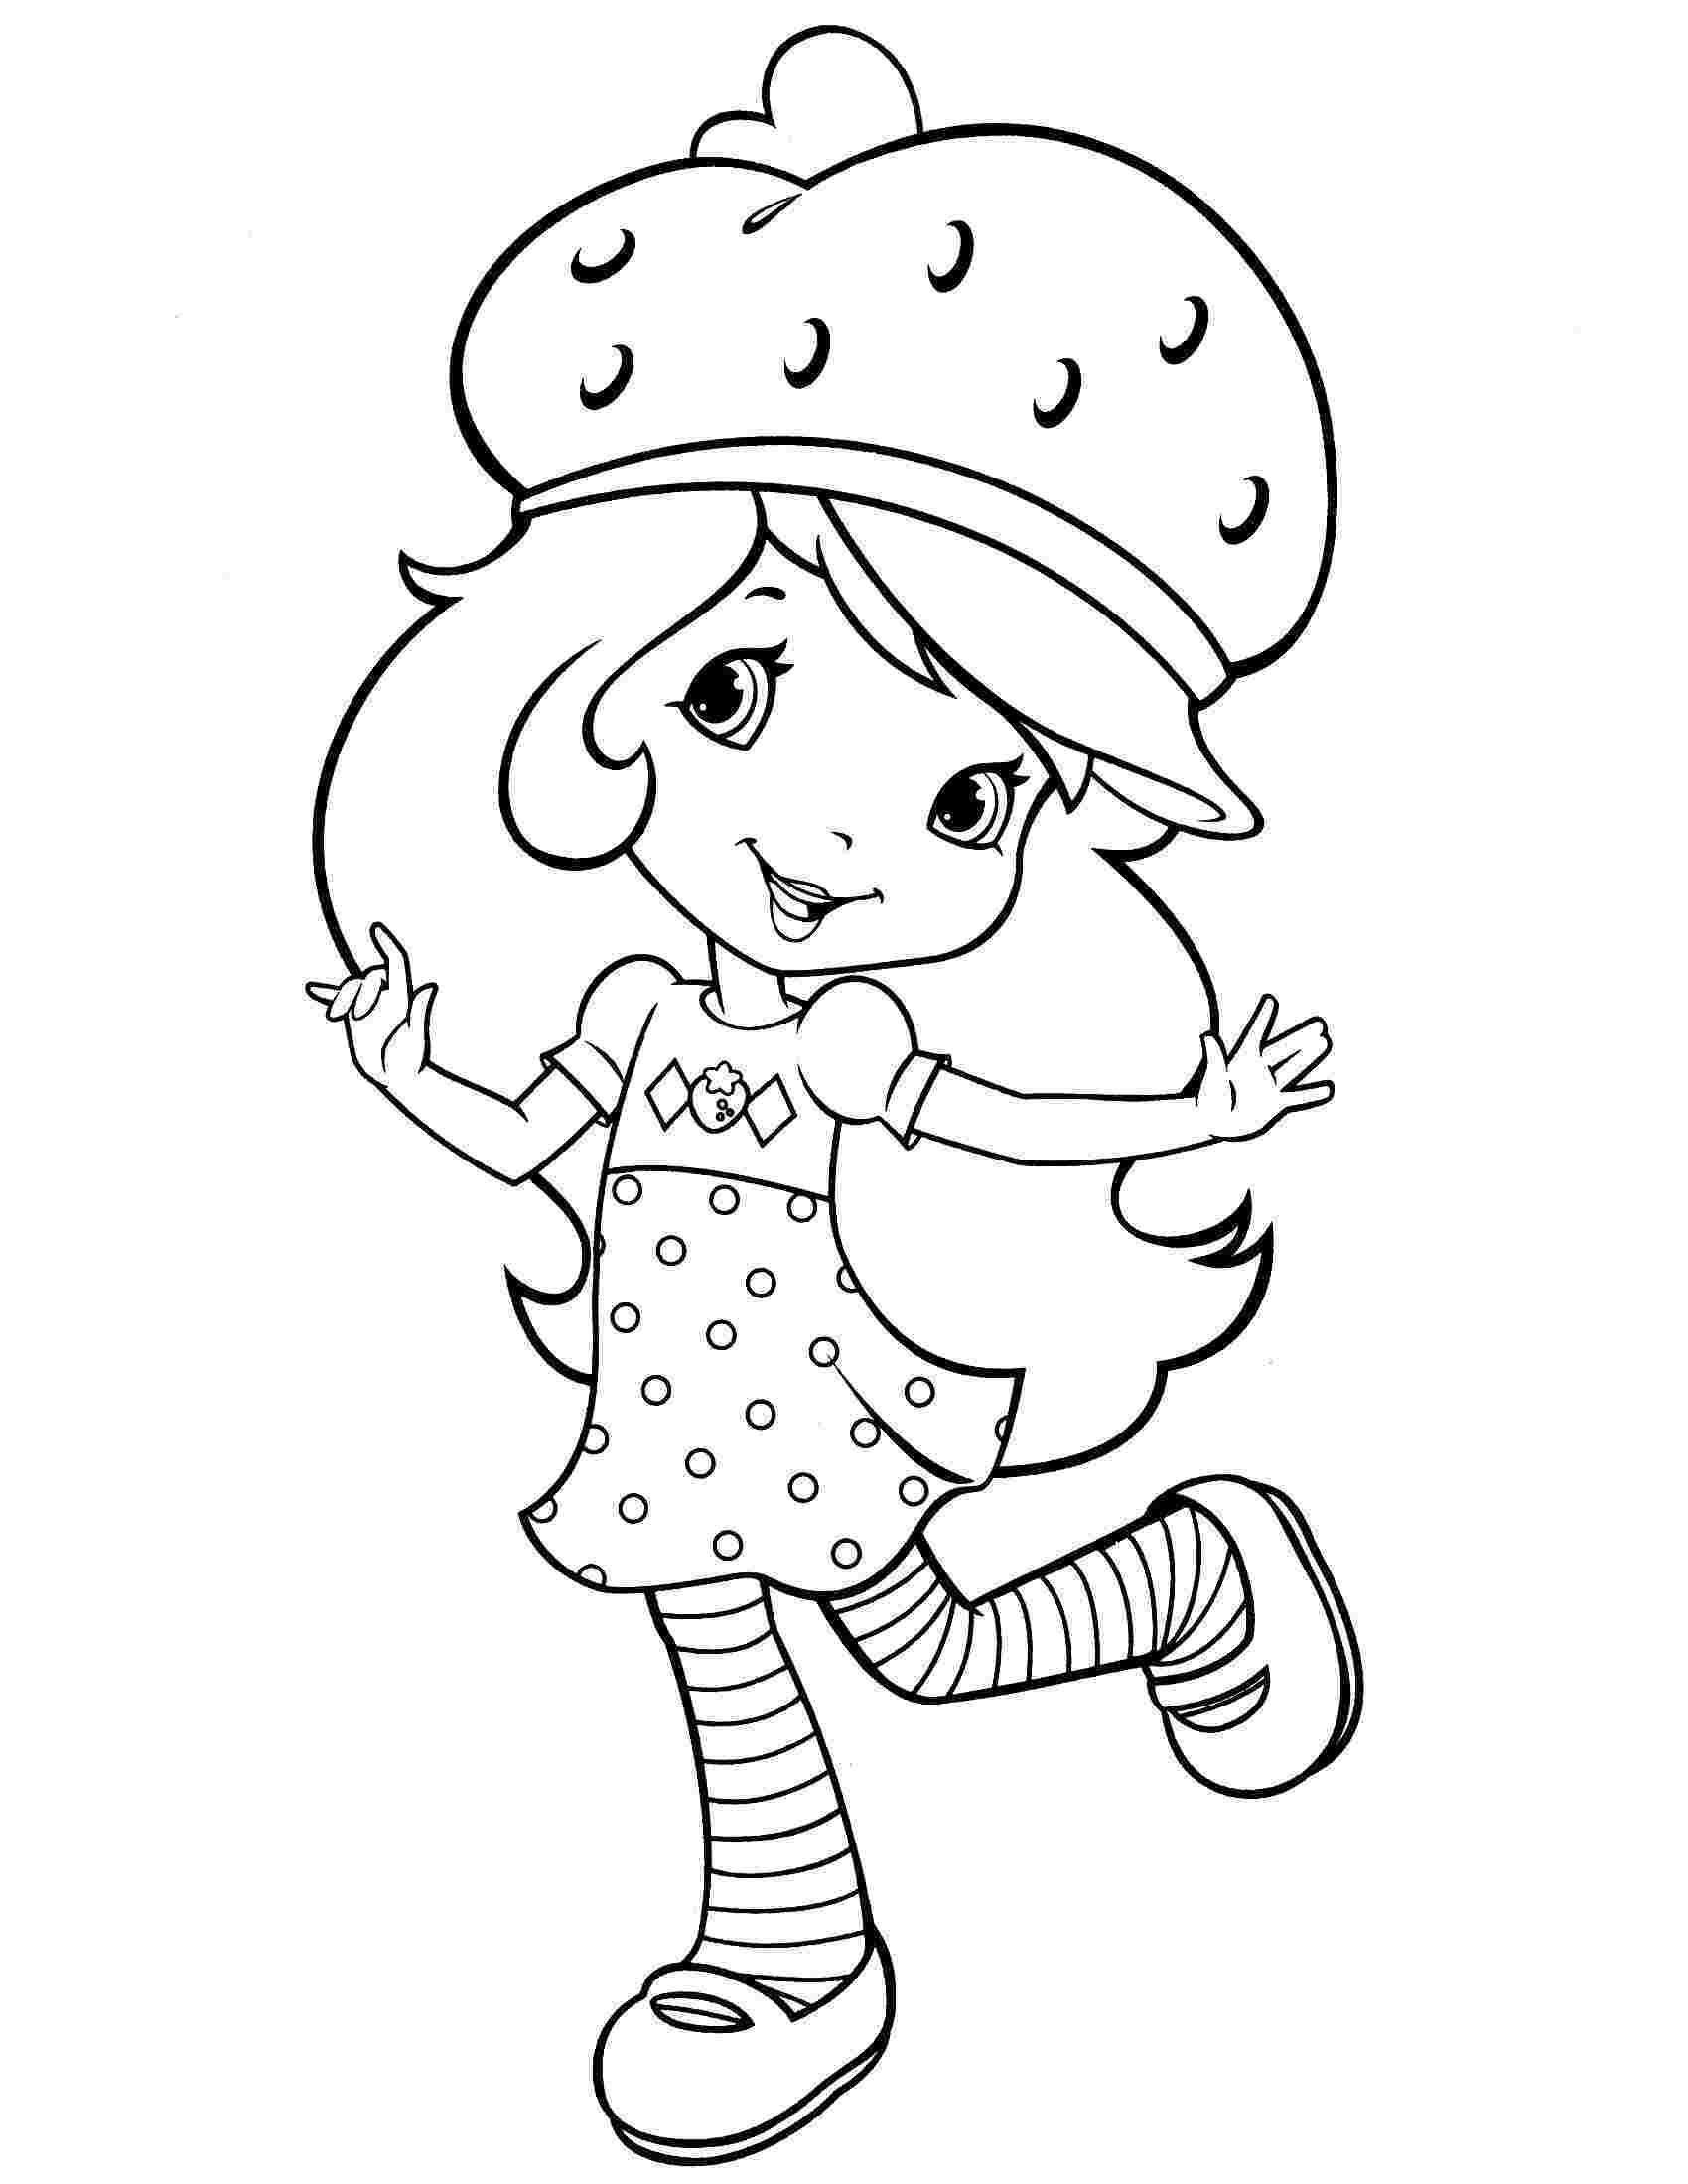 strawberry shortcake coloring pages printable free printable strawberry shortcake coloring pages for kids strawberry shortcake printable coloring pages